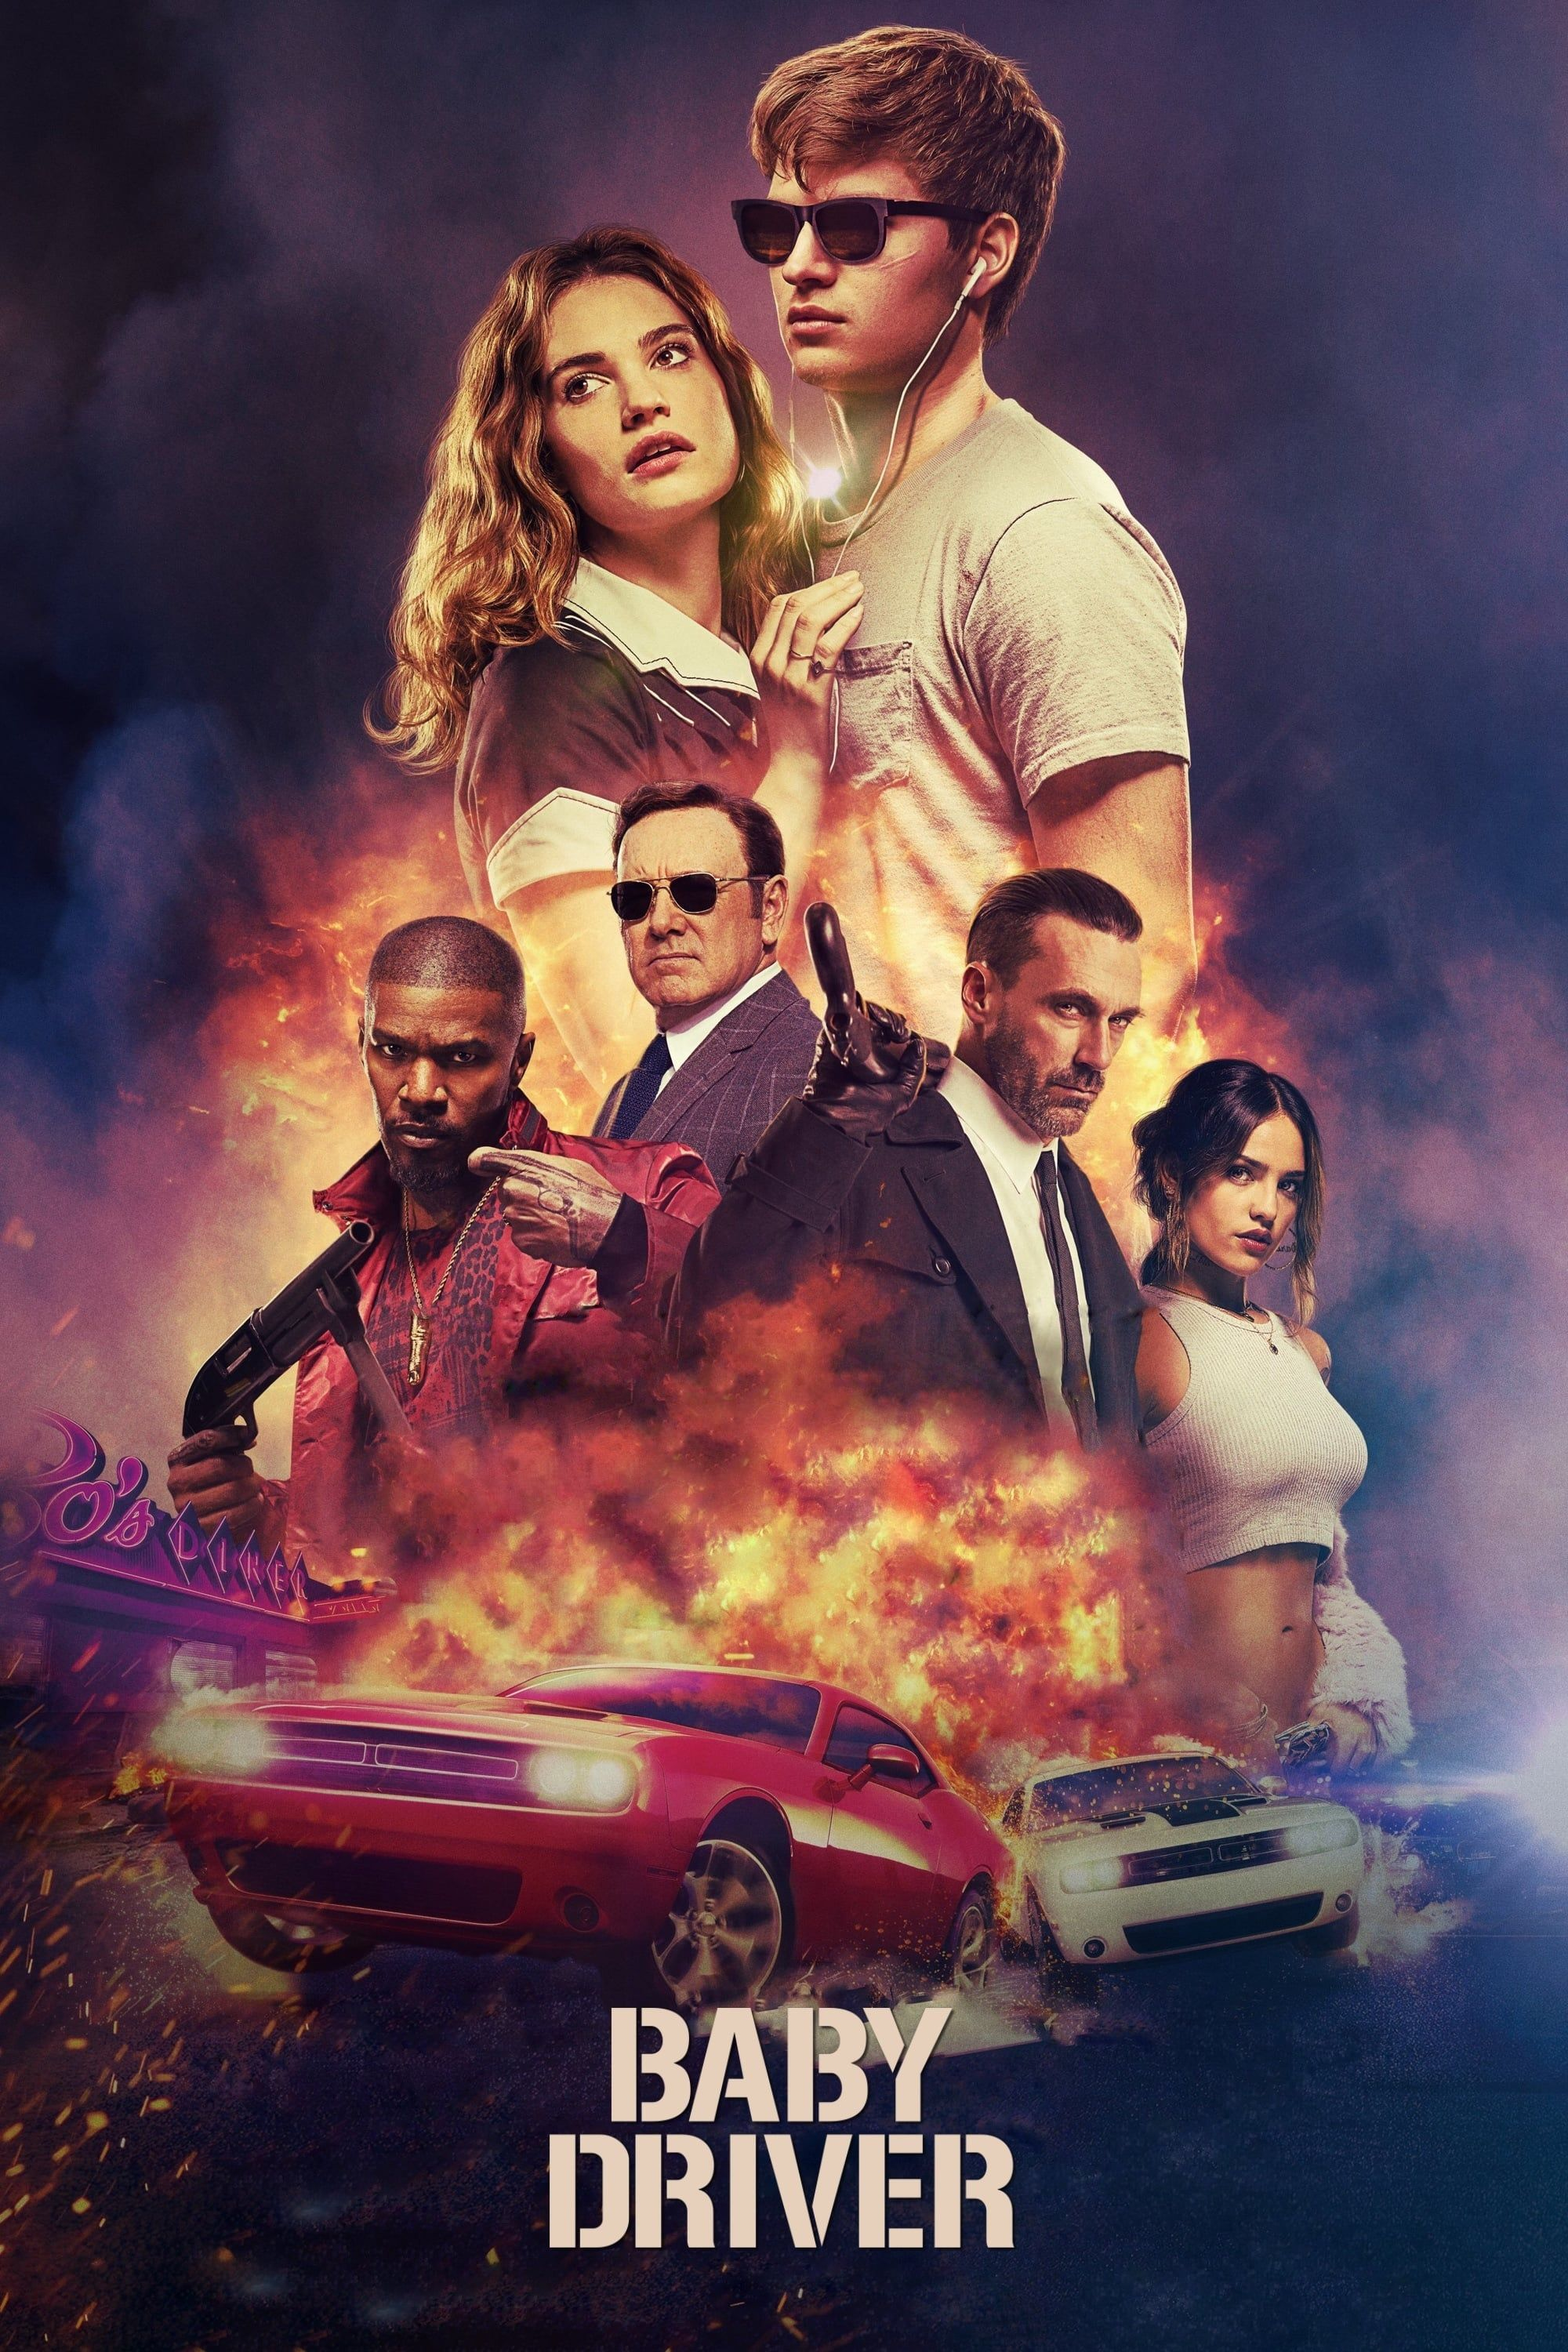 Baby Driver Movies In 2019 Baby Driver Full Movie Baby Driver